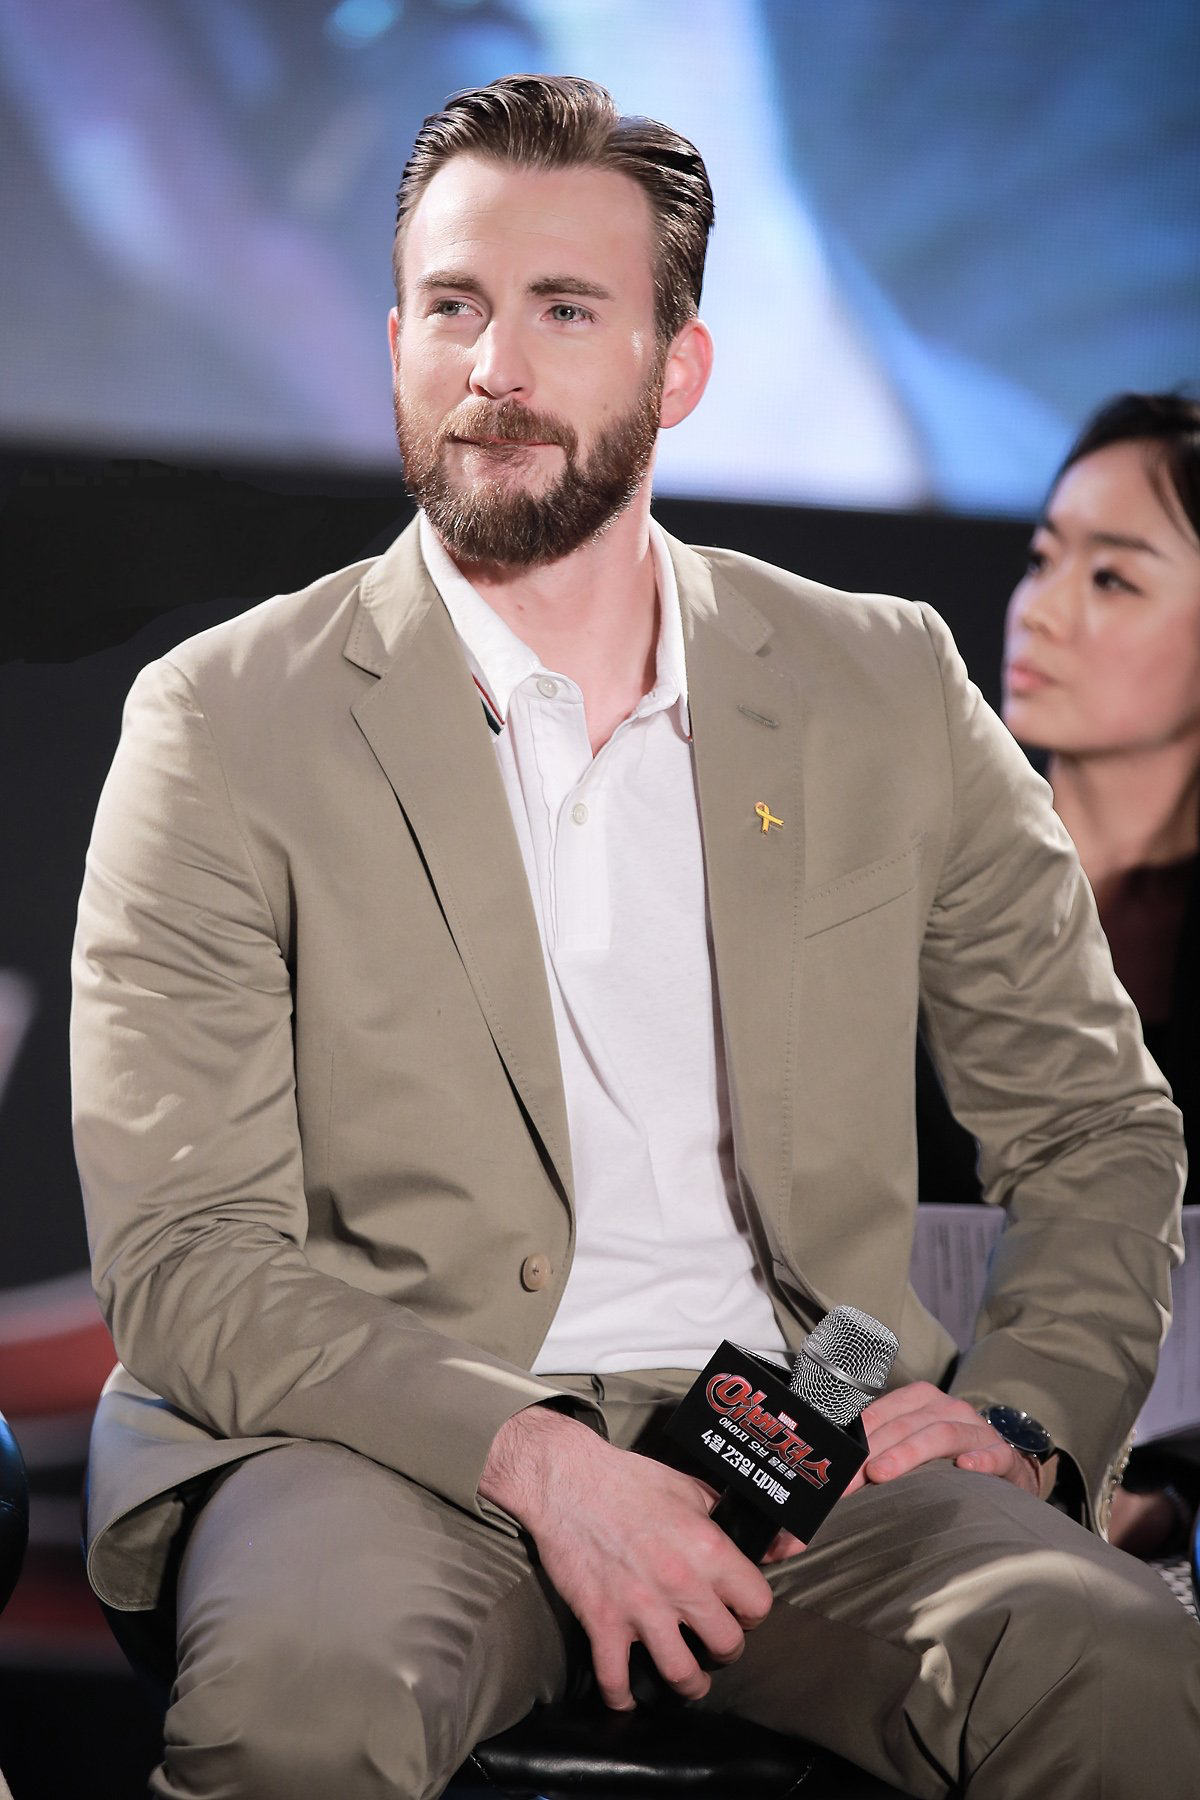 I Really Hope He Knows That Holding That Mic There Like That Is Really Suggestive Chr Chris Evans Chris Evans Captain America Christopher Evans